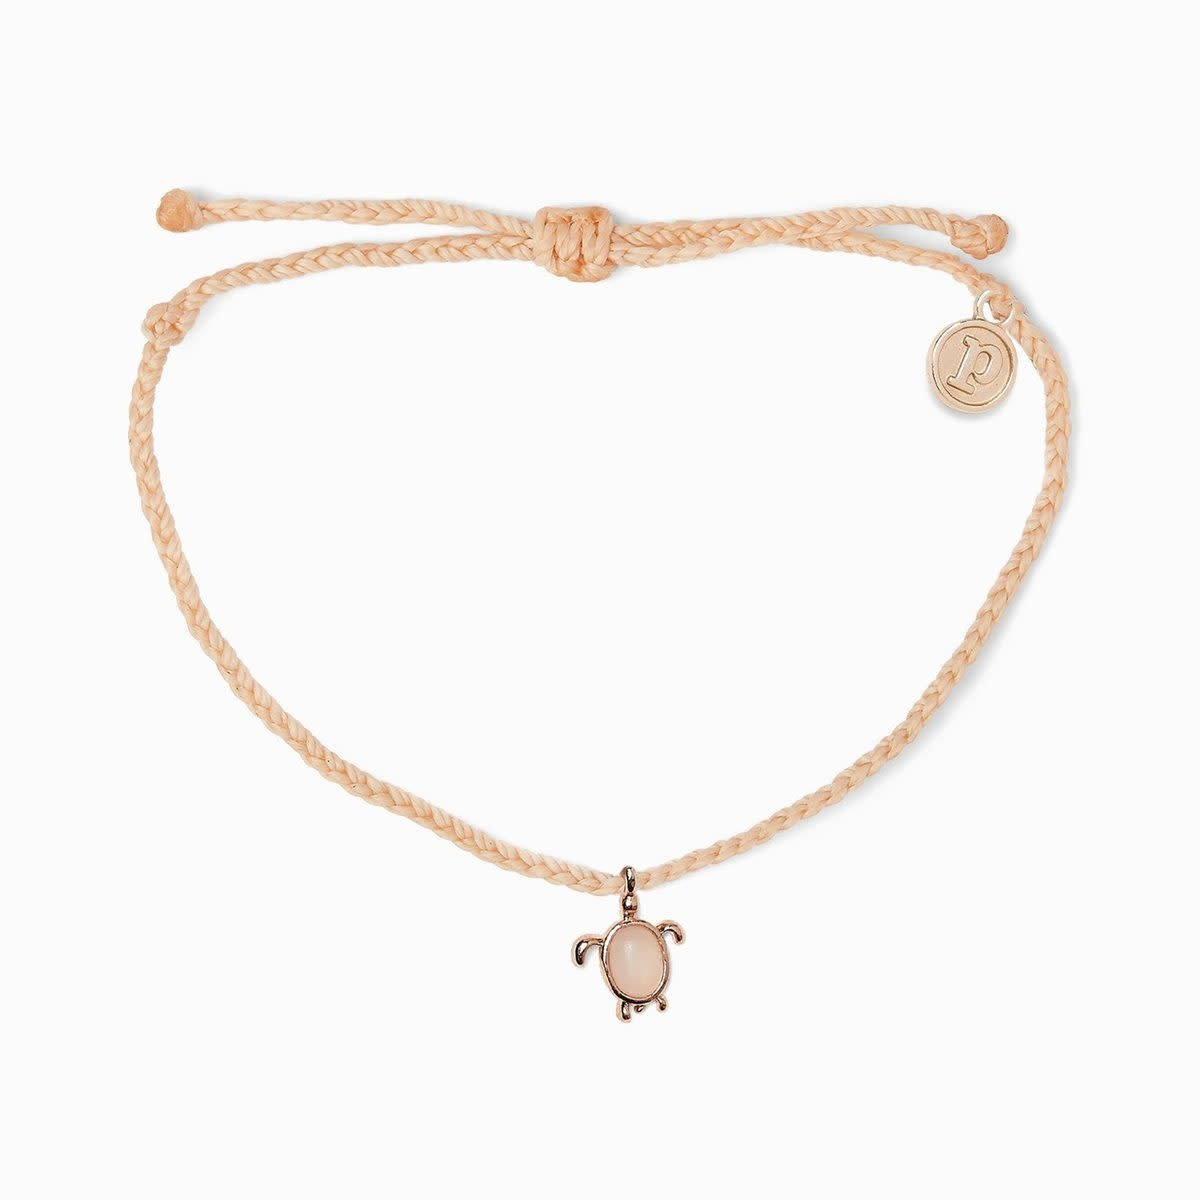 Rose Gold Sea Turtles Charm